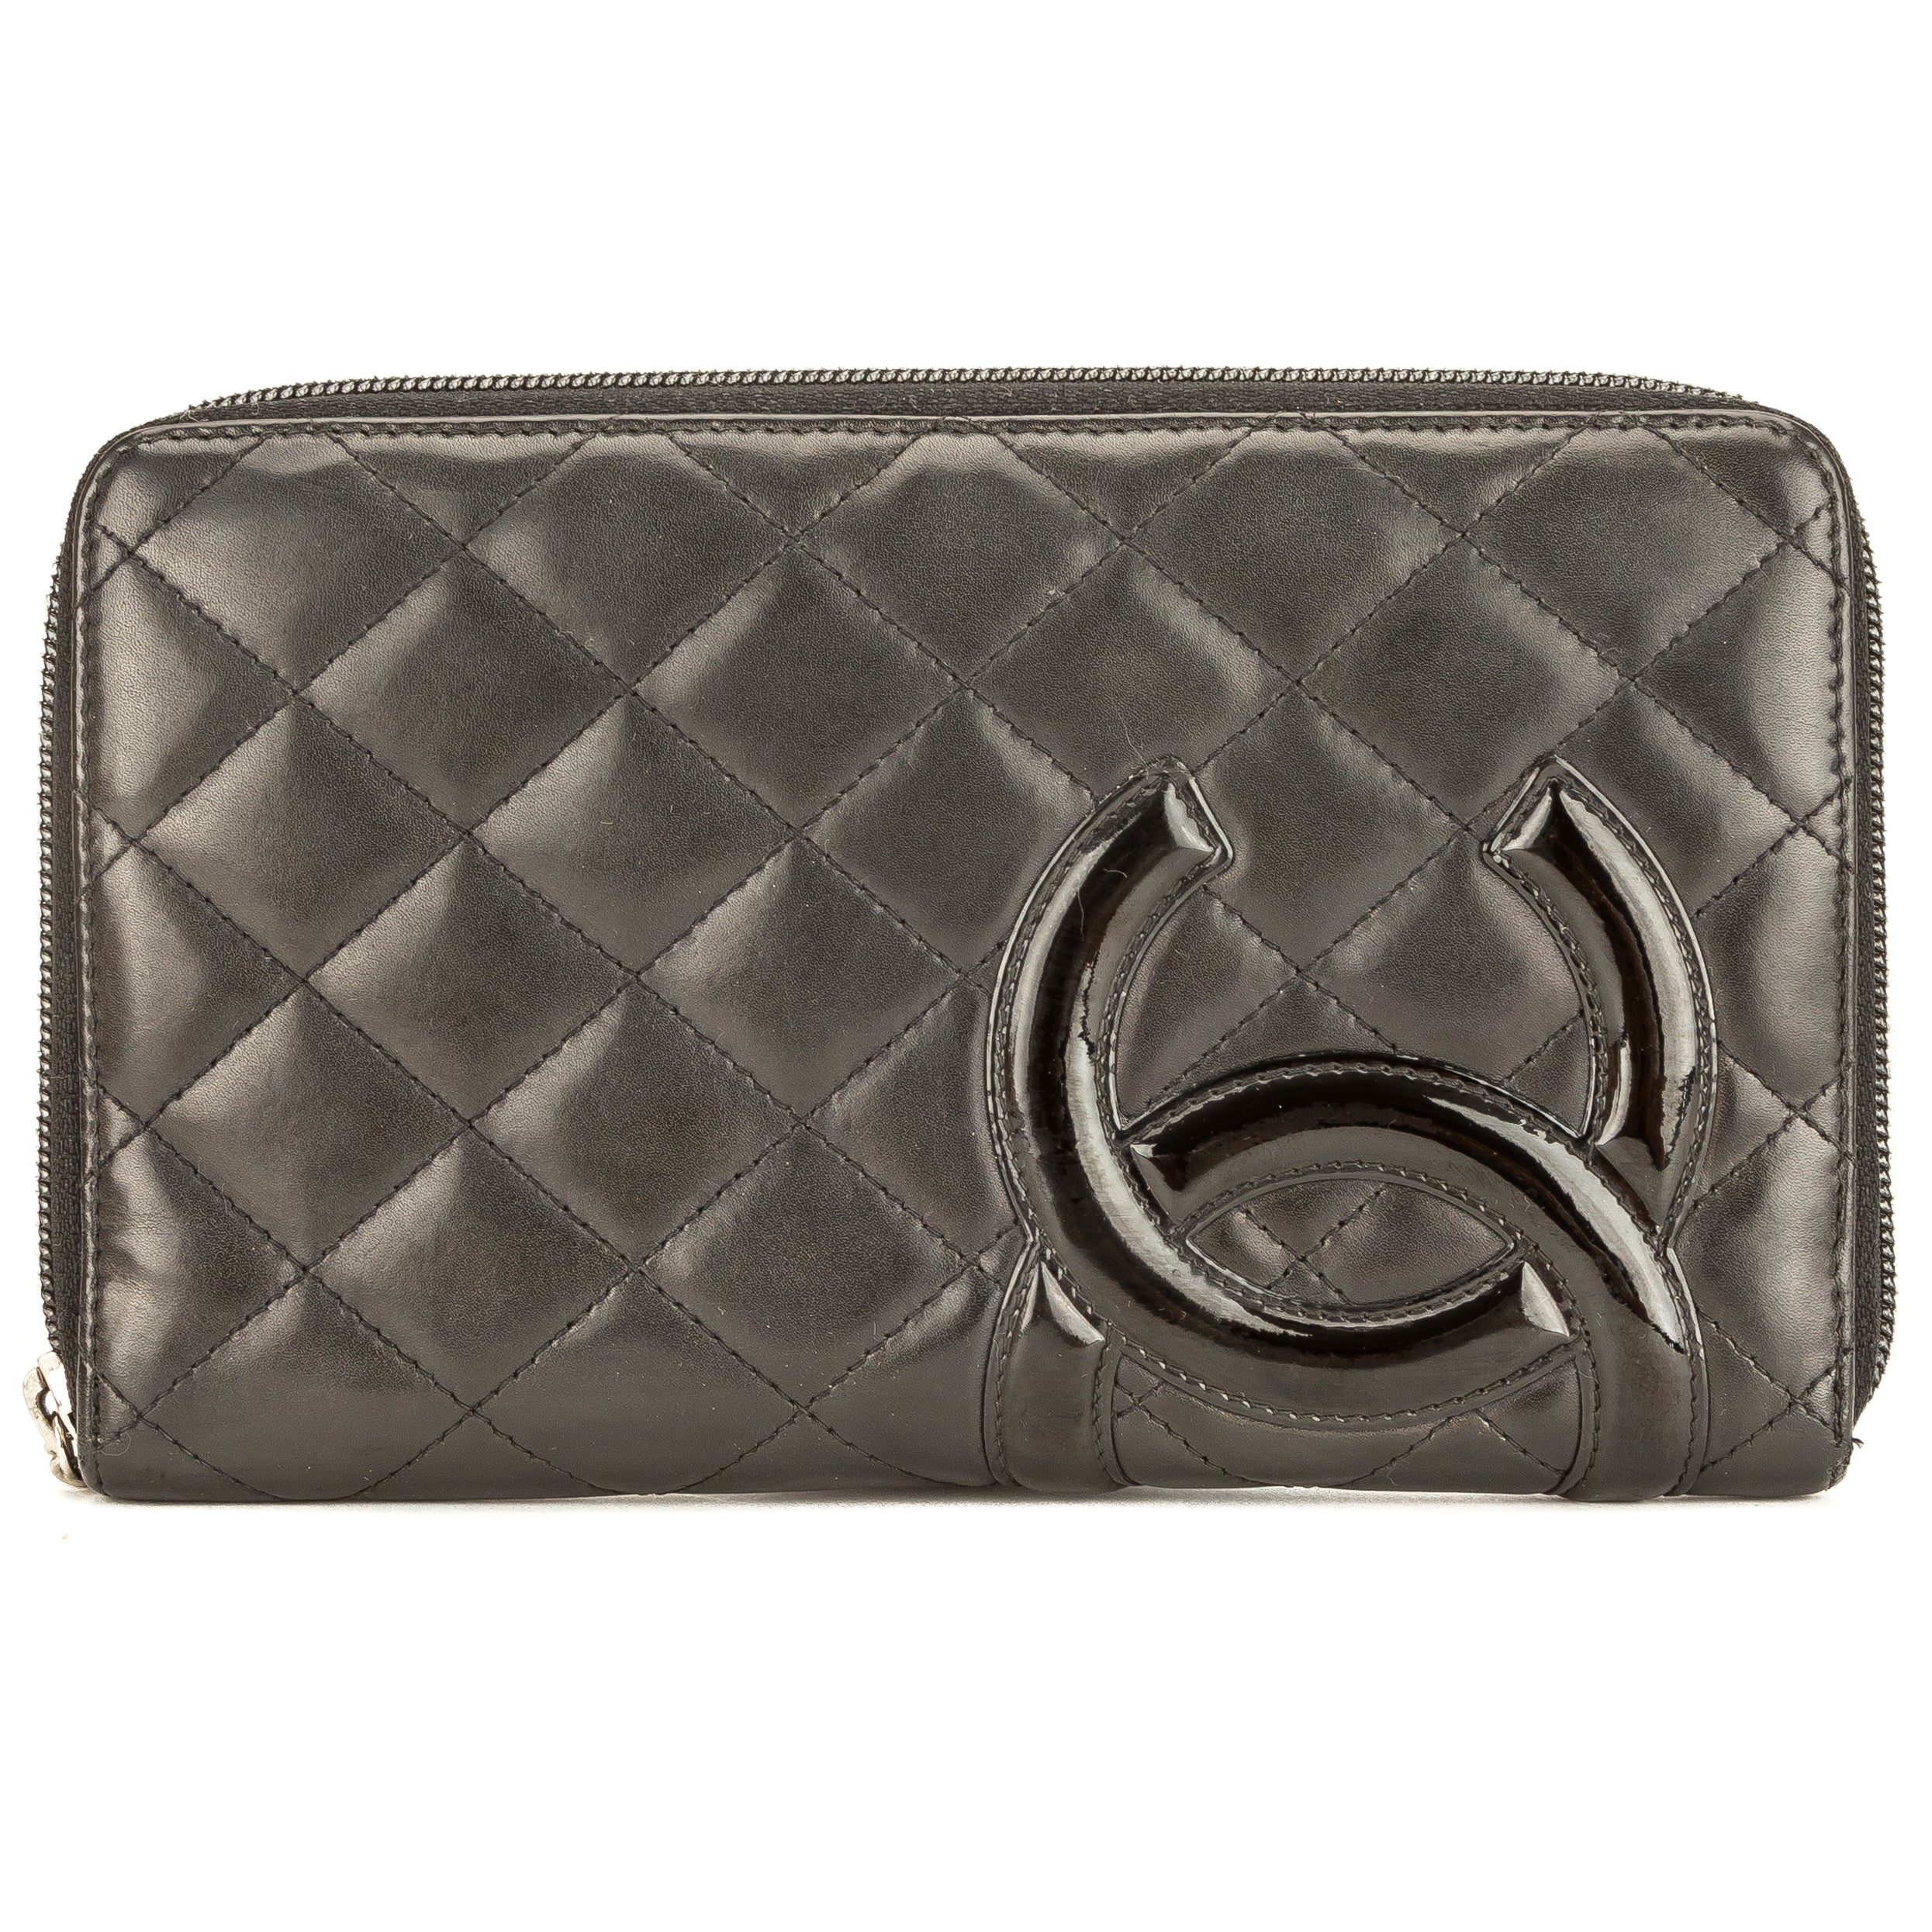 90dc4bb196c1 Chanel Black Quilted Lambskin Leather Cambon Ligne Zip Wallet Pre Owned